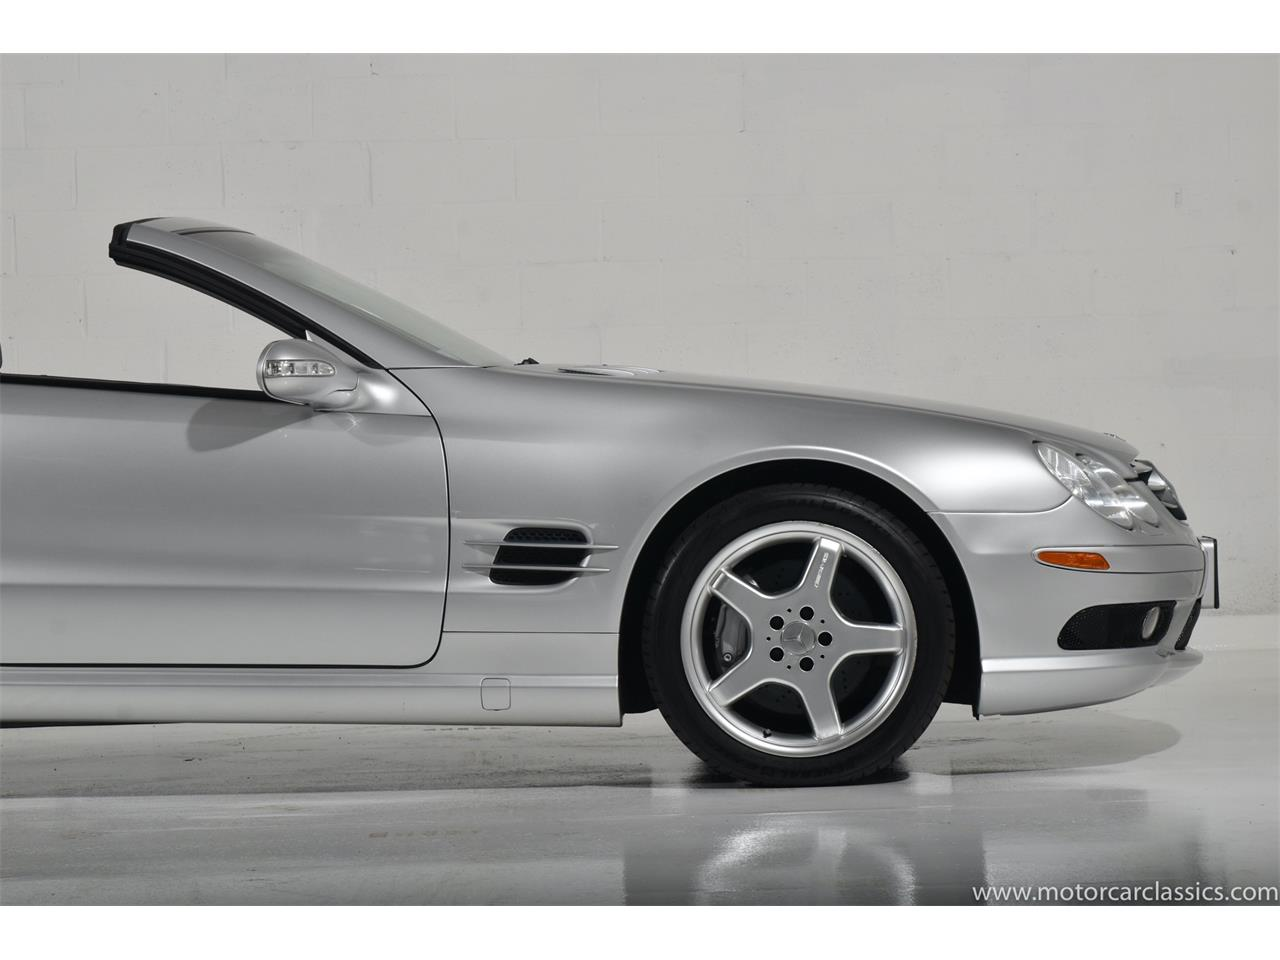 2003 Mercedes-Benz SL-Class (CC-1390755) for sale in Farmingdale, New York